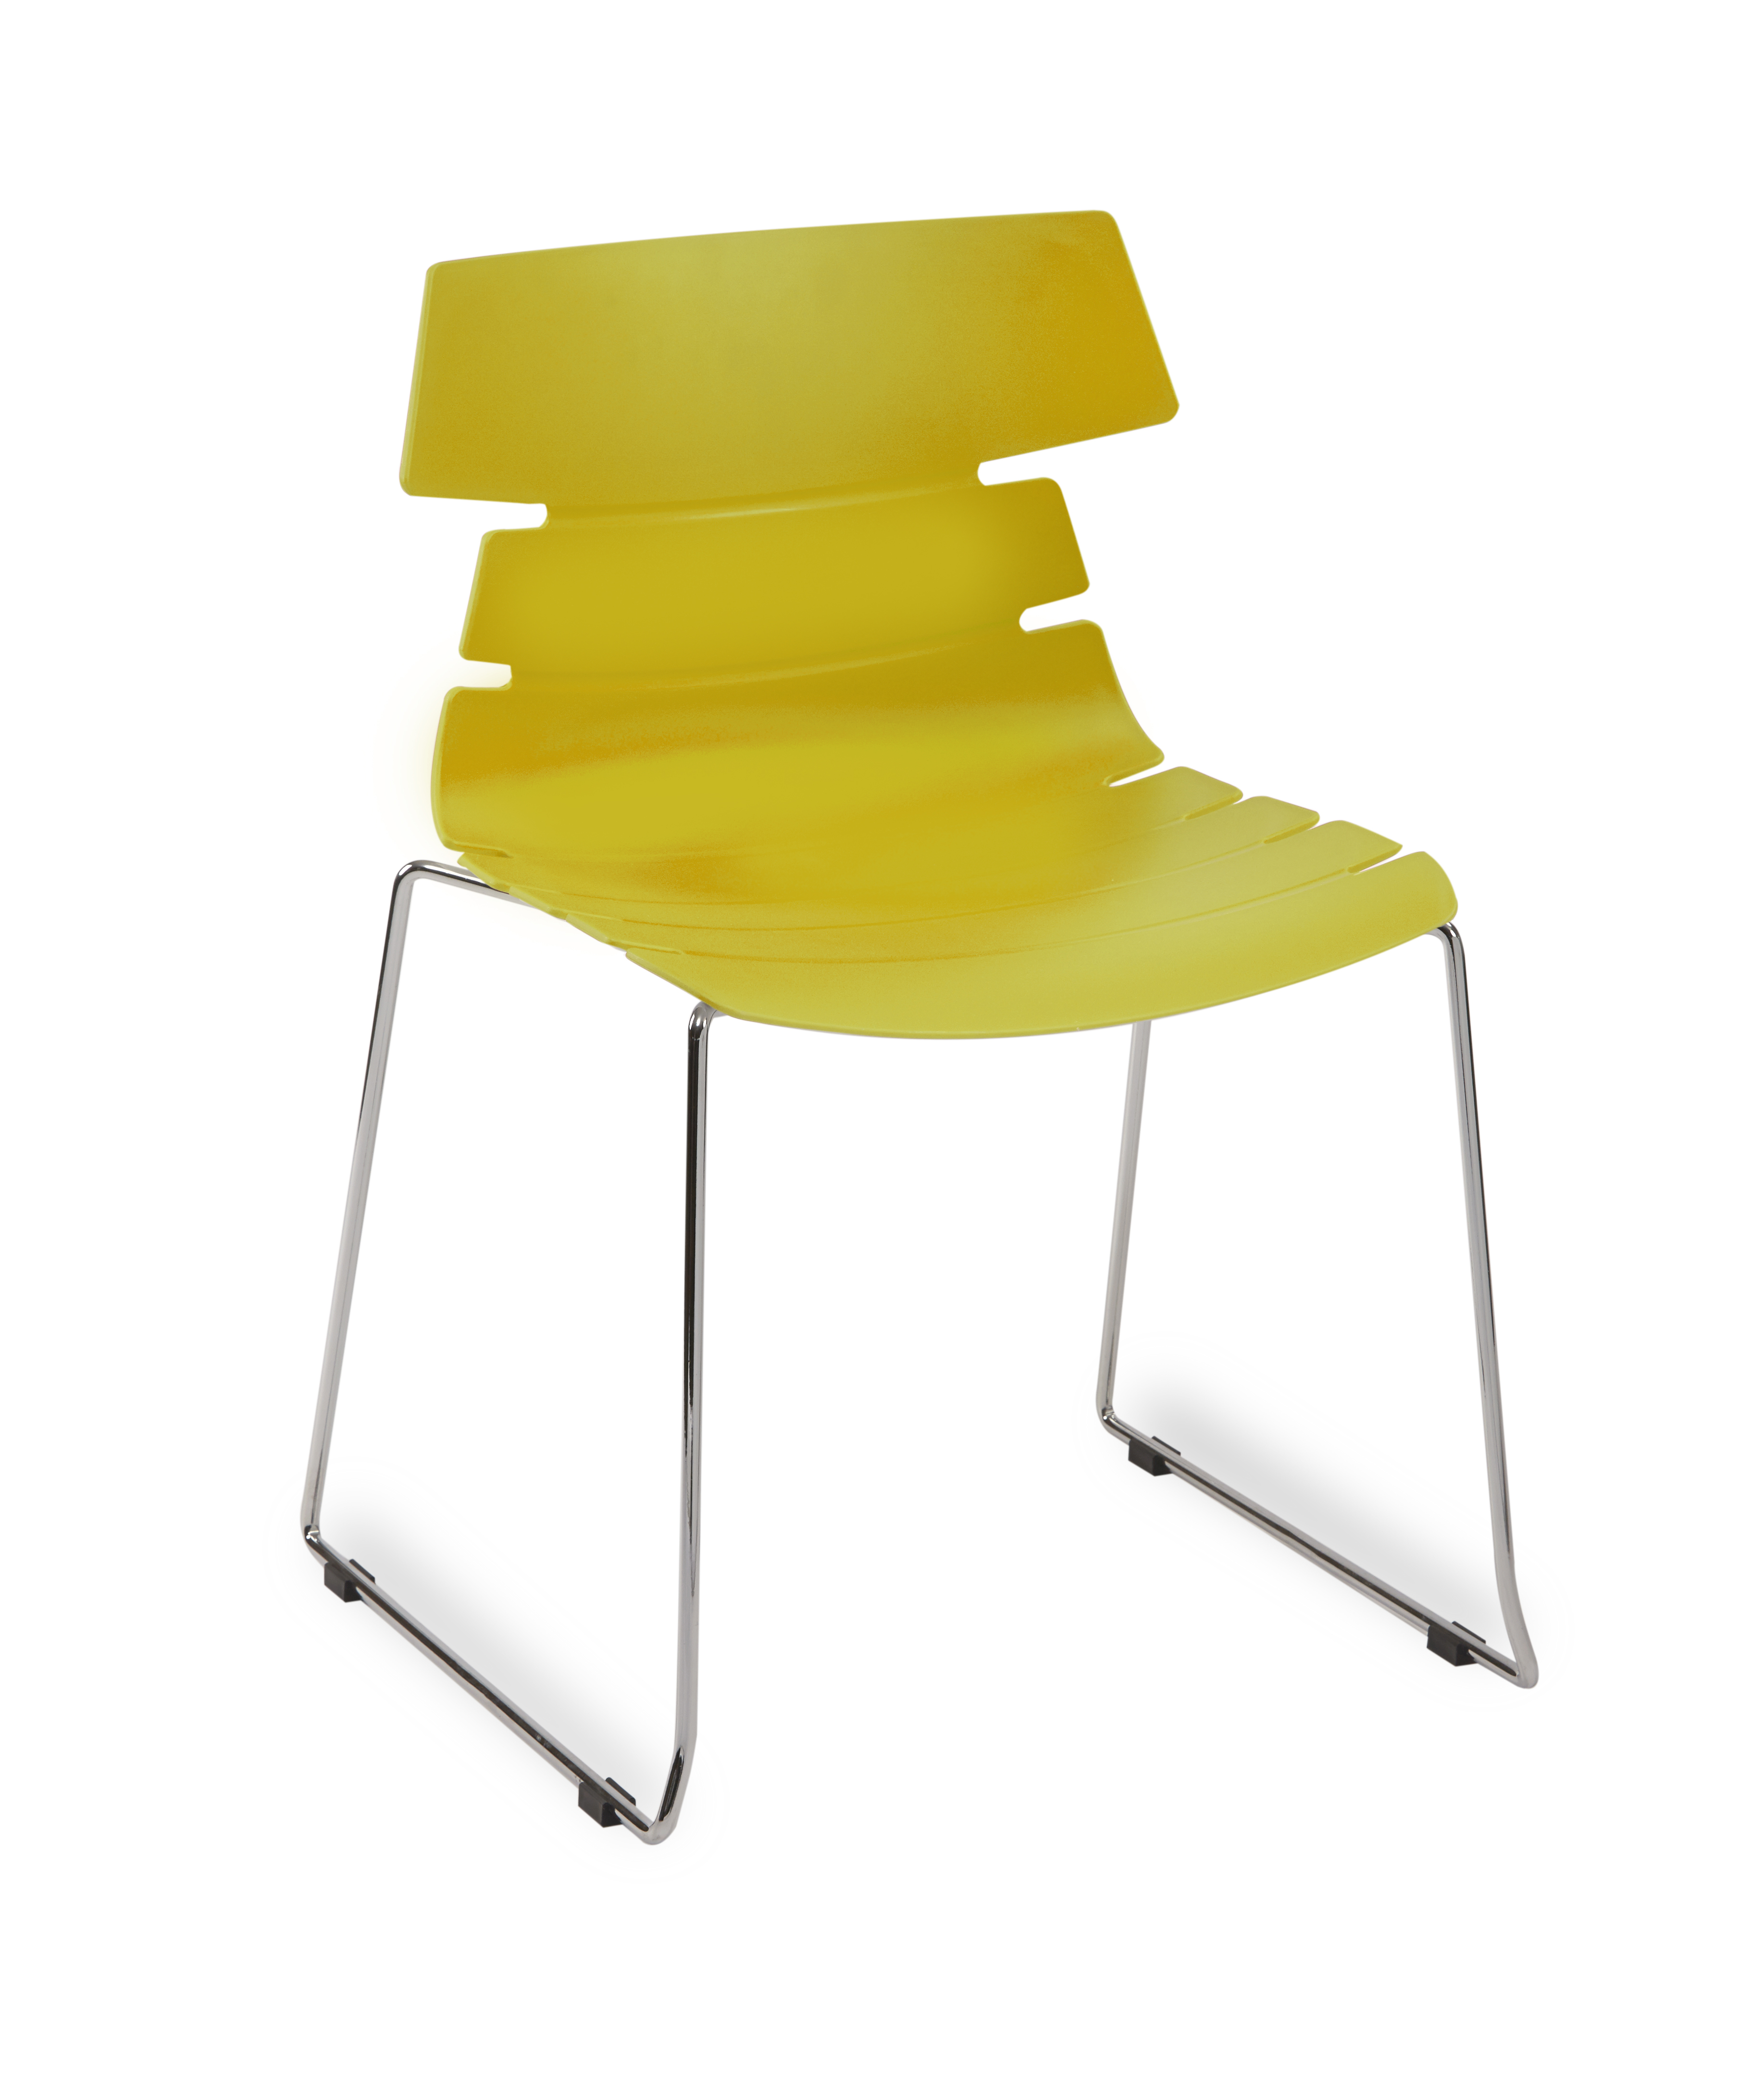 Huxley Cafe Chair with Skid Base Simply Tables & Chairs